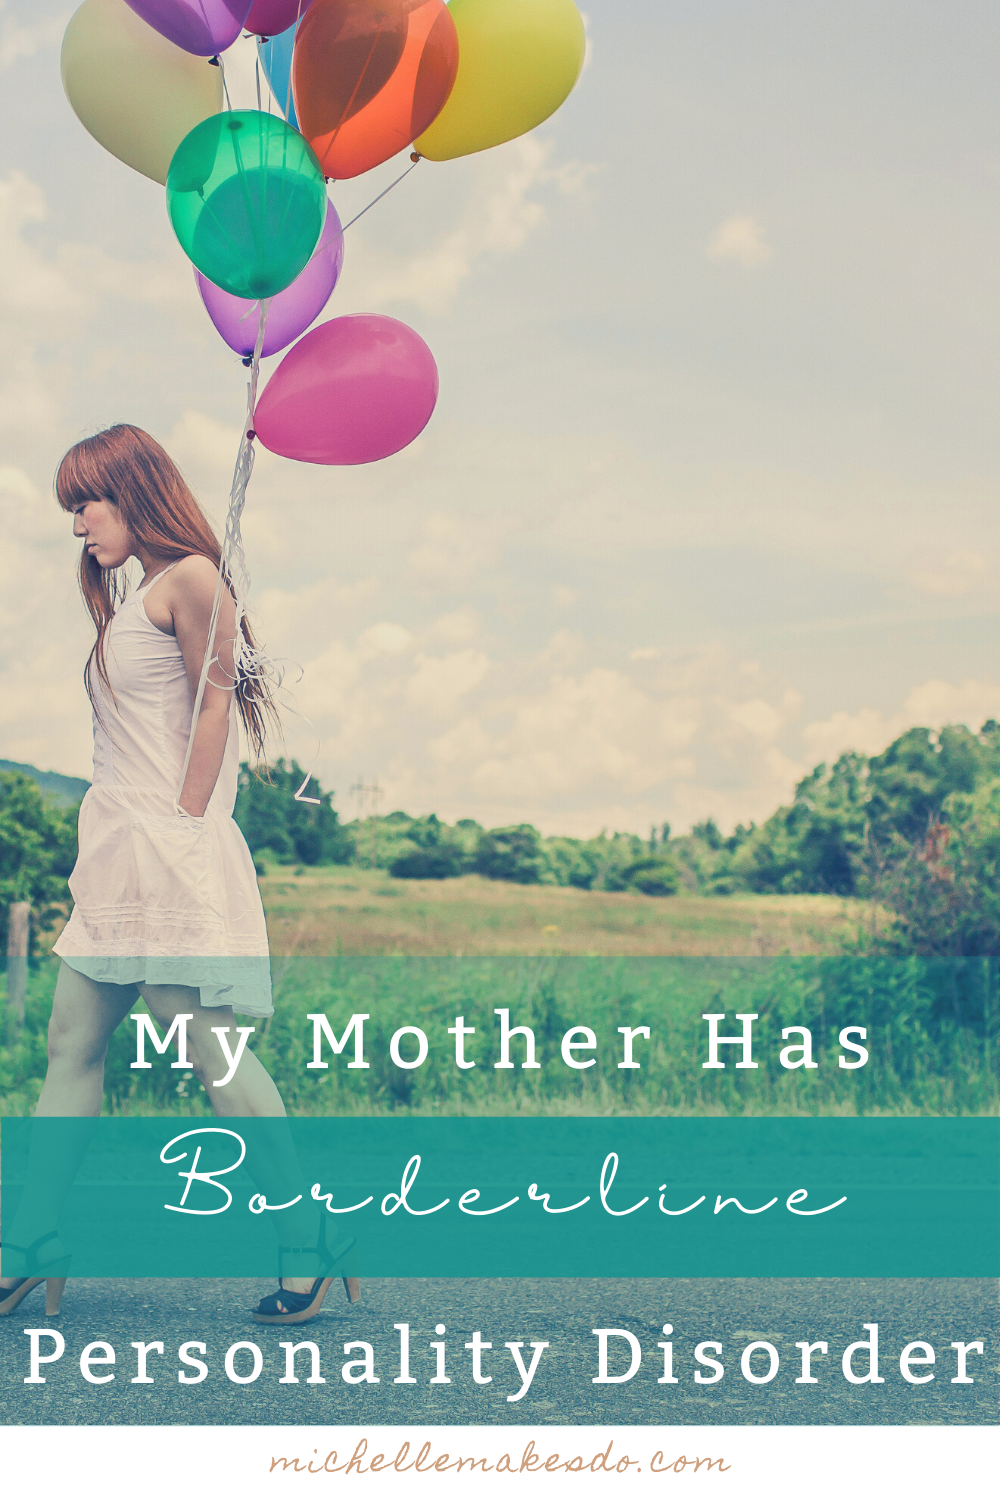 My Mother Has Borderline Personality Disorder